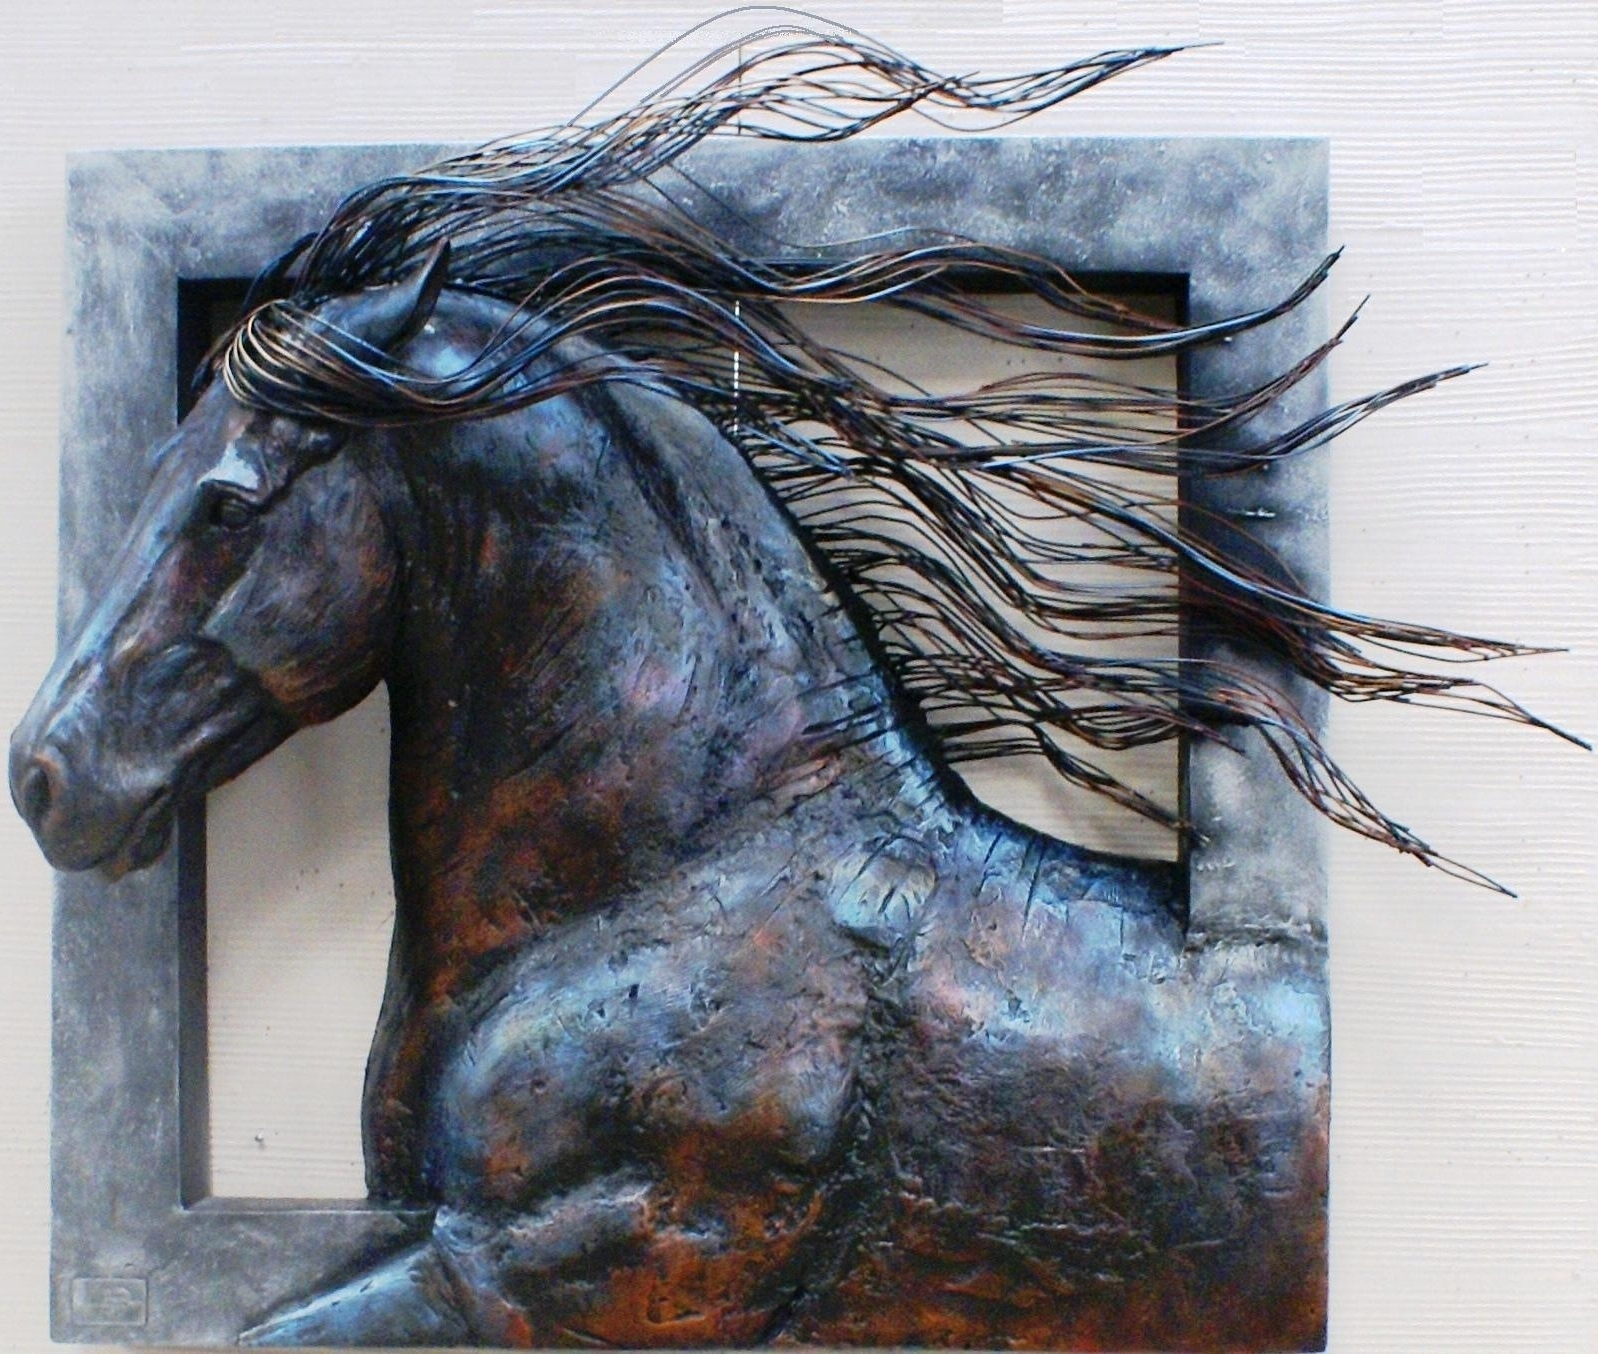 Most Current 3D Metal Wall Art Pertaining To Wall Art Designs: Awesome 10 Metal Wall Art Sculpture Killer Animals (View 10 of 15)